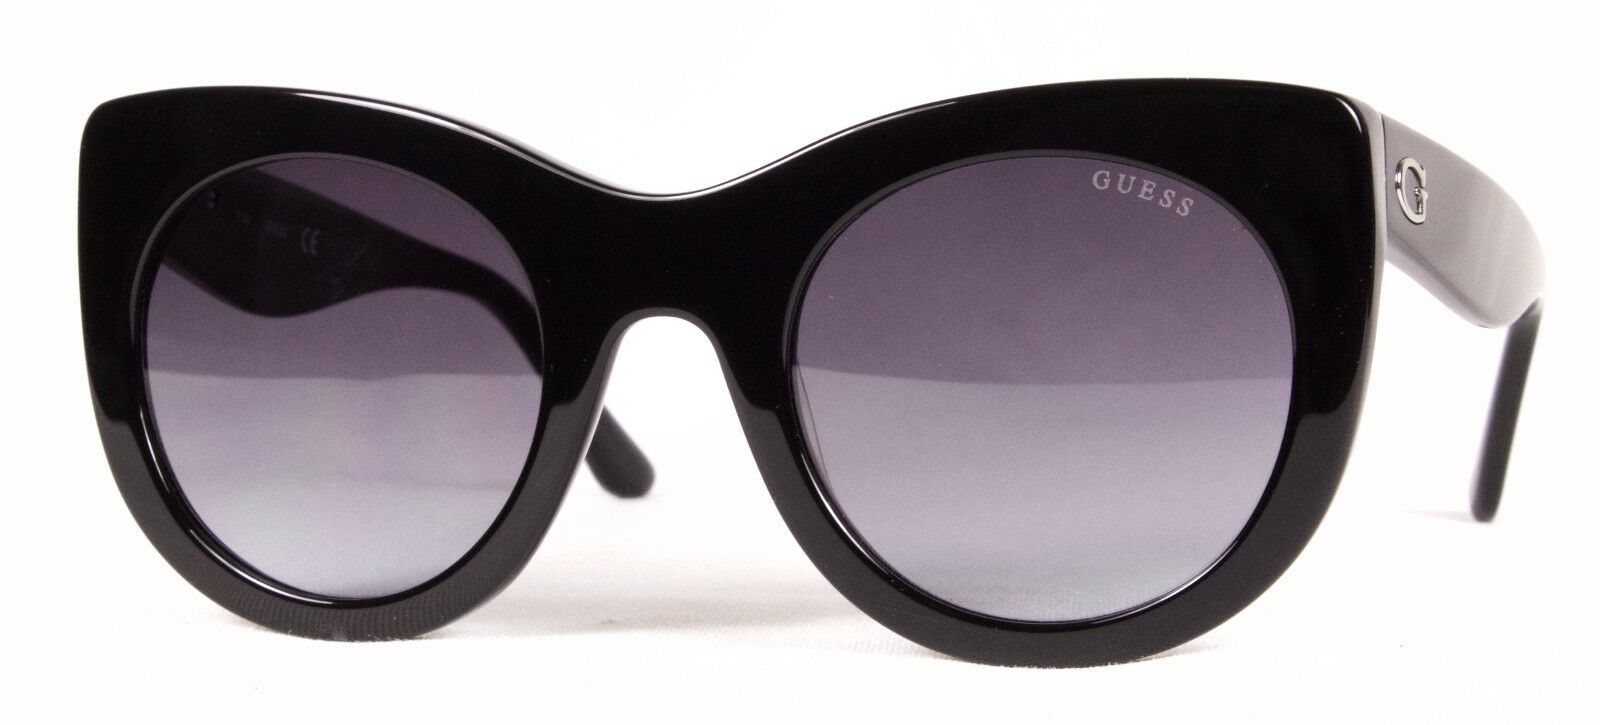 08fcaff2477 GUESS GU 7485 Sunglasses 01b Shiny Black 100 Authentic for sale ...